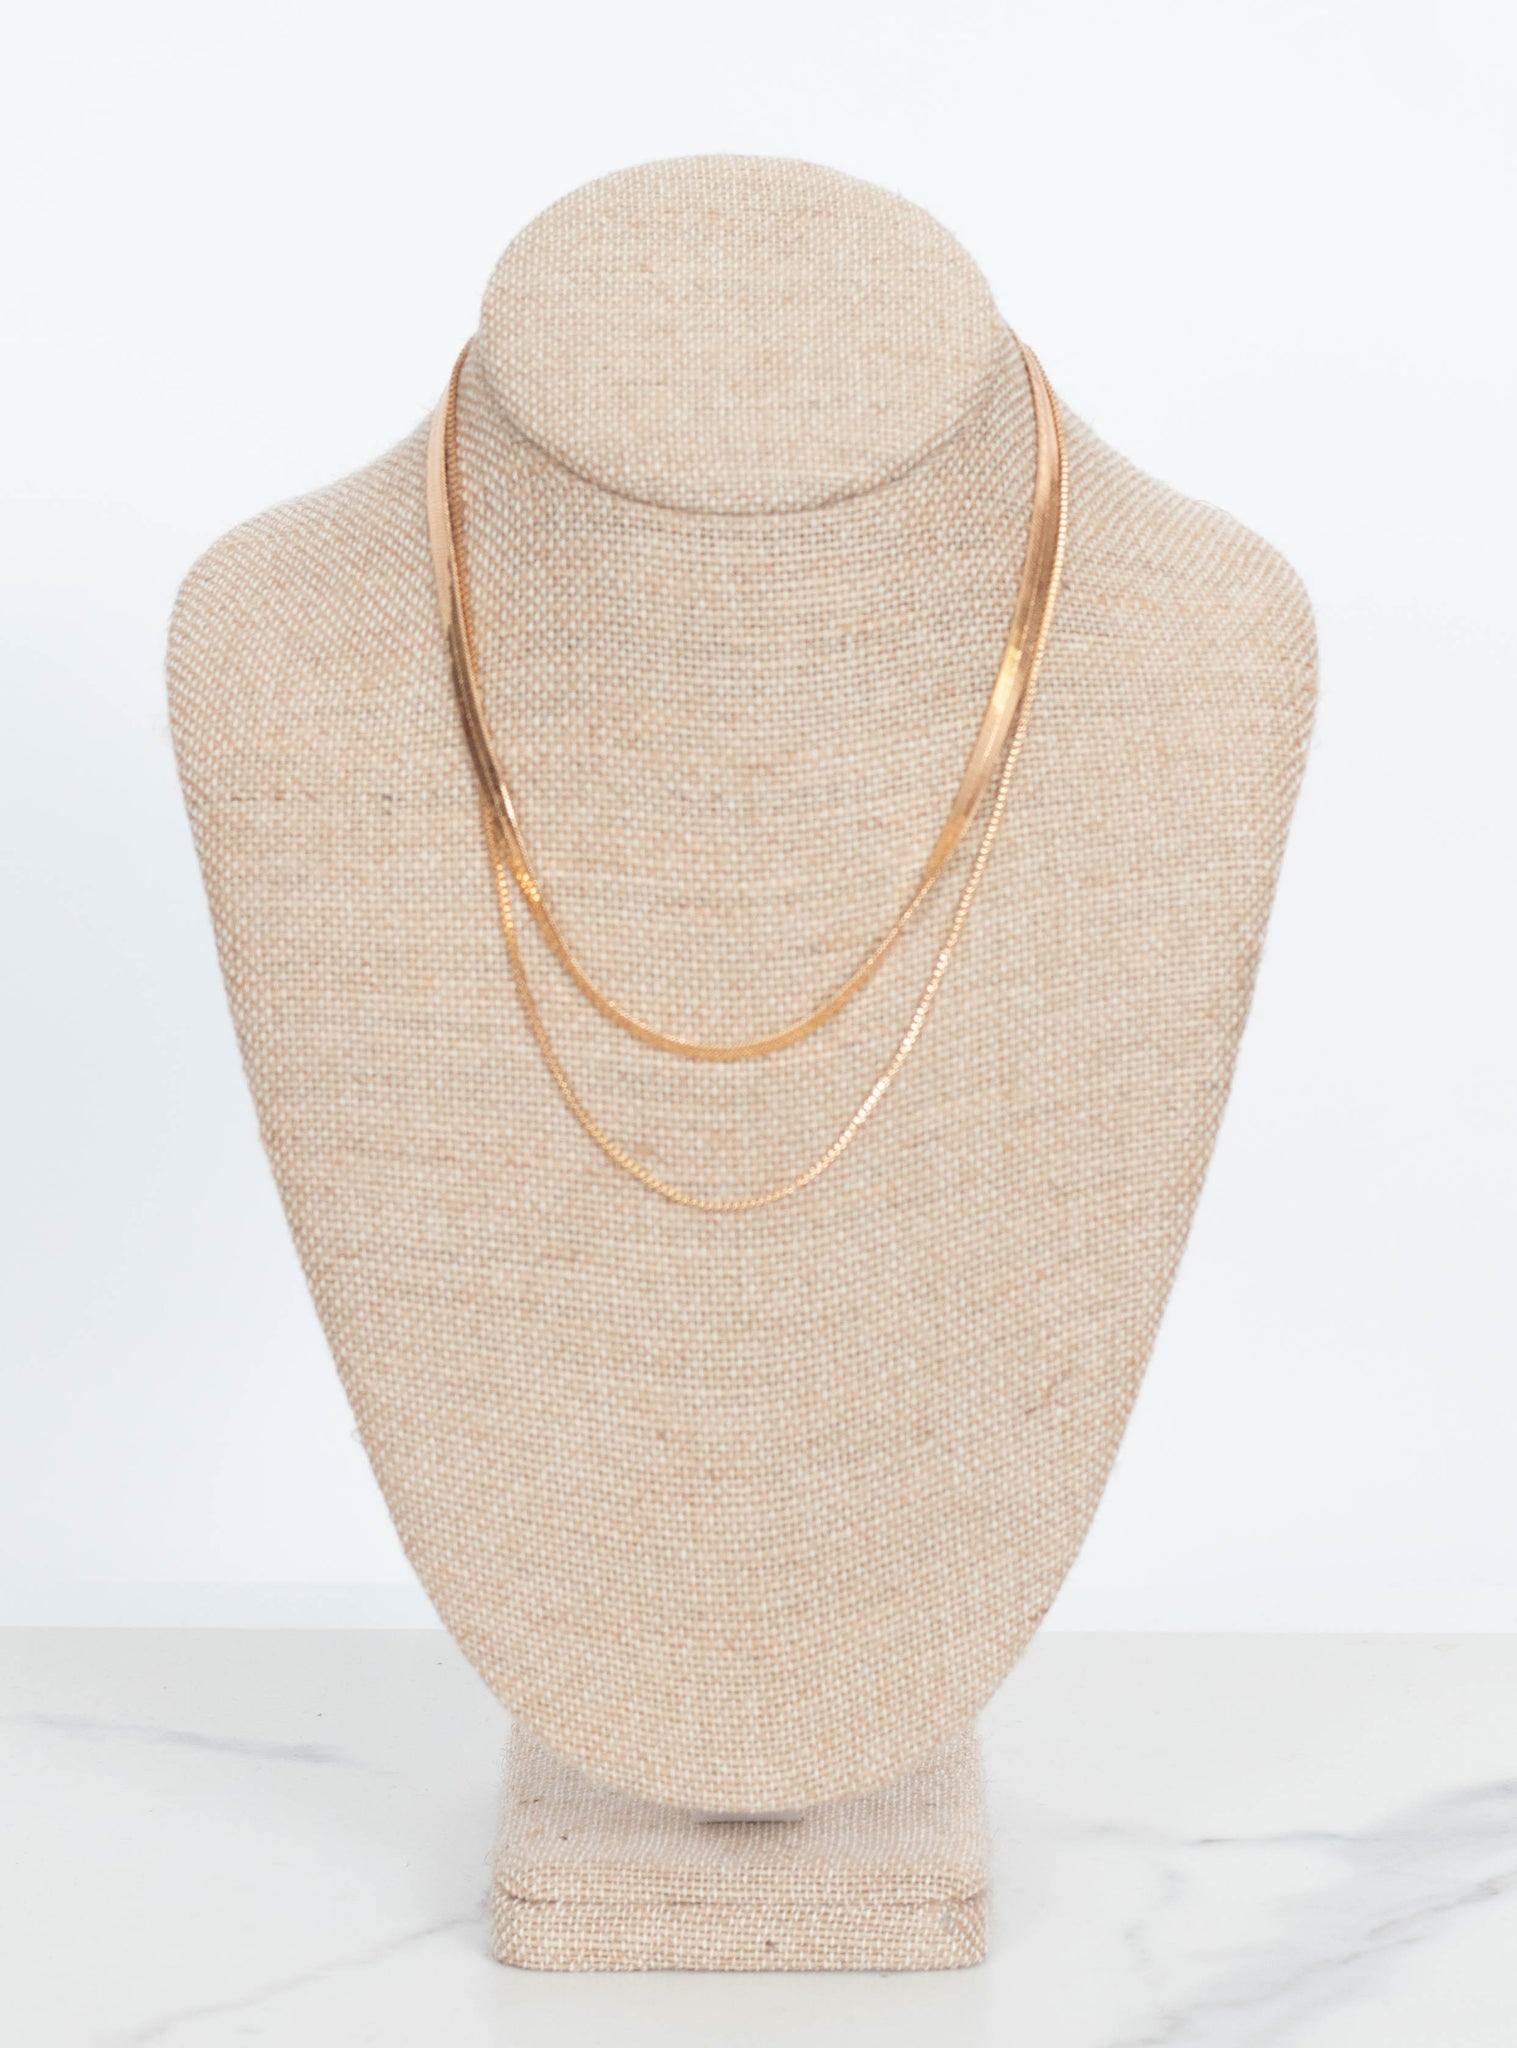 Fiona Herringbone Necklace